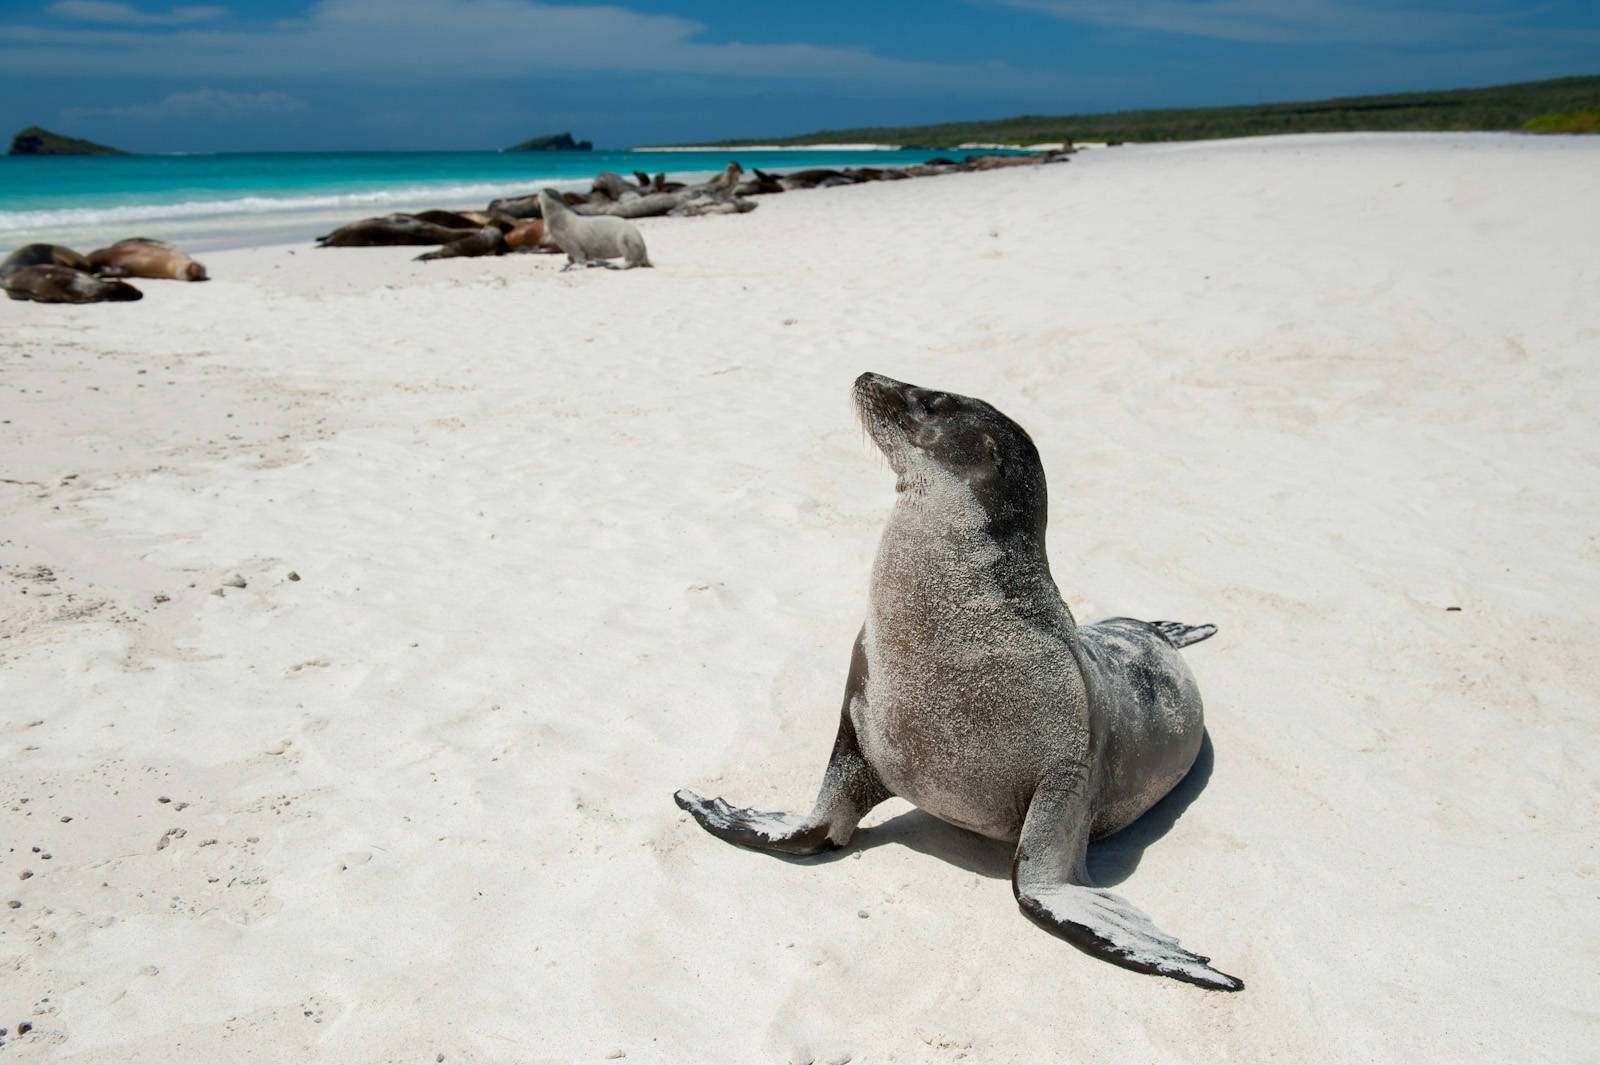 Photo: A Galapagos sea lion (Zalophus wollebaeki) on Espanola Island in Galapagos National Park.